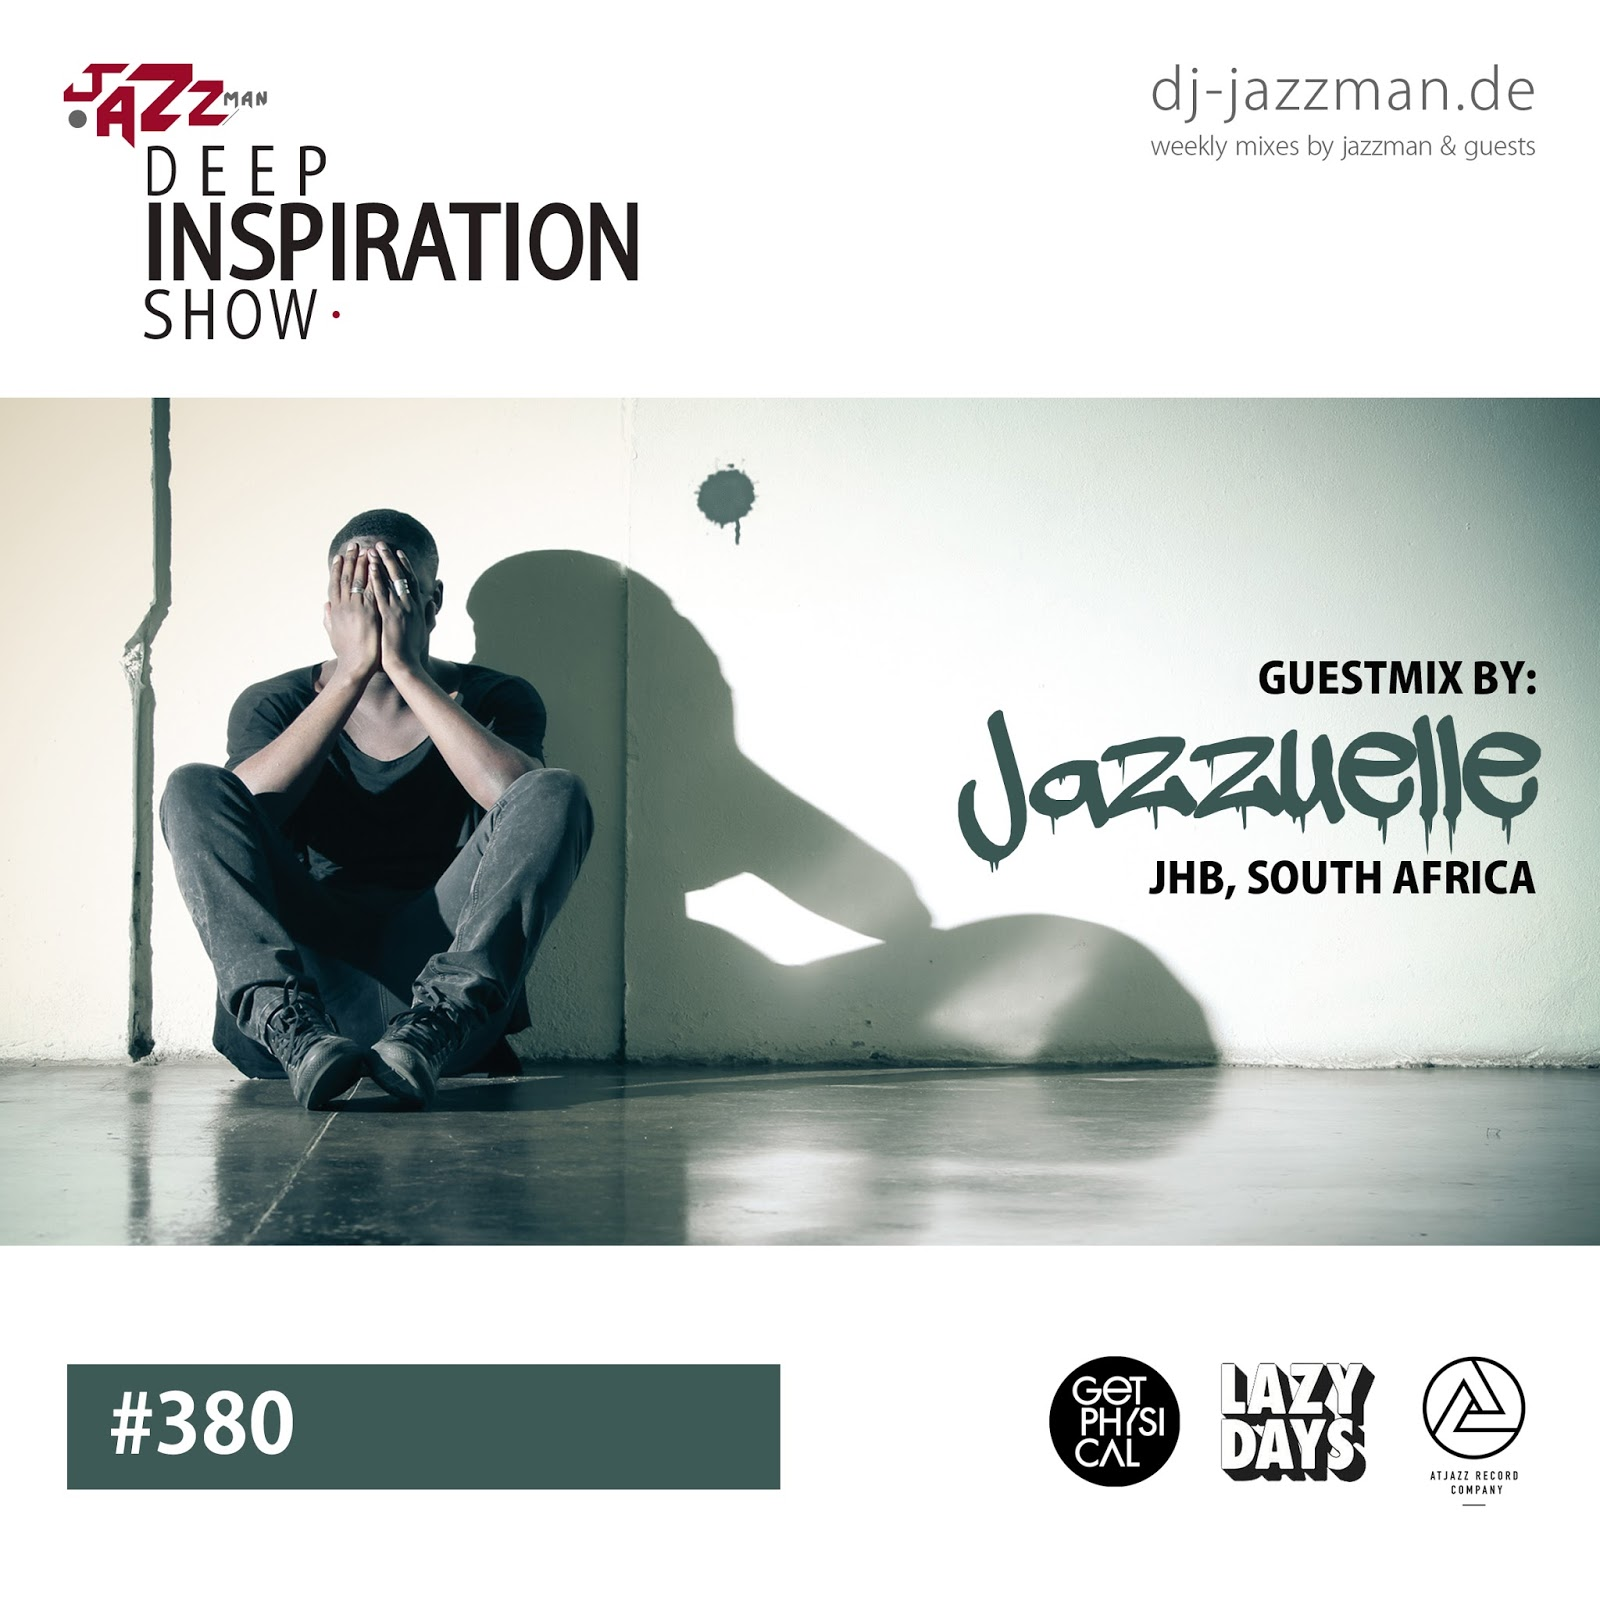 Various deep house stories vol 10 at juno download - Jazzuelle Is Back For The 2nd Time In The Deep Inspiration Show Like His First Guestmix Its A Tape With Only His Own Productions